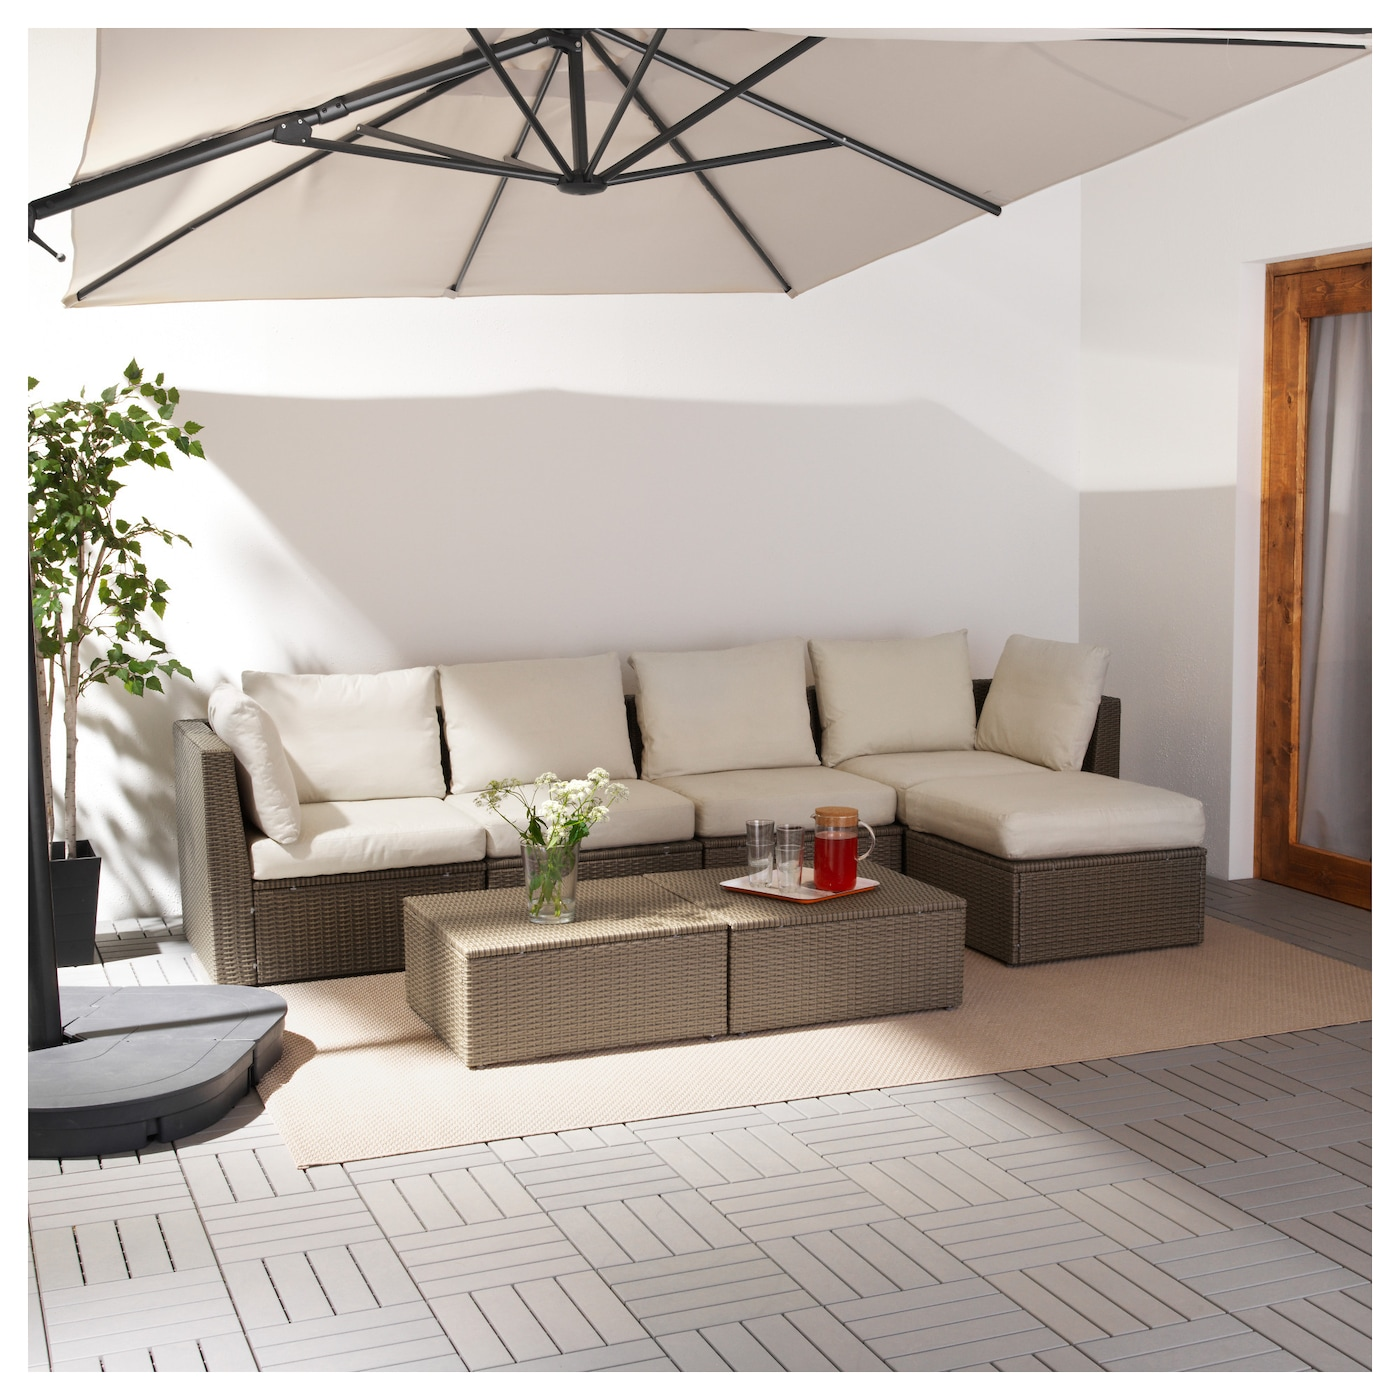 IKEA ARHOLMA 4-seat sofa with footstool, outdoor